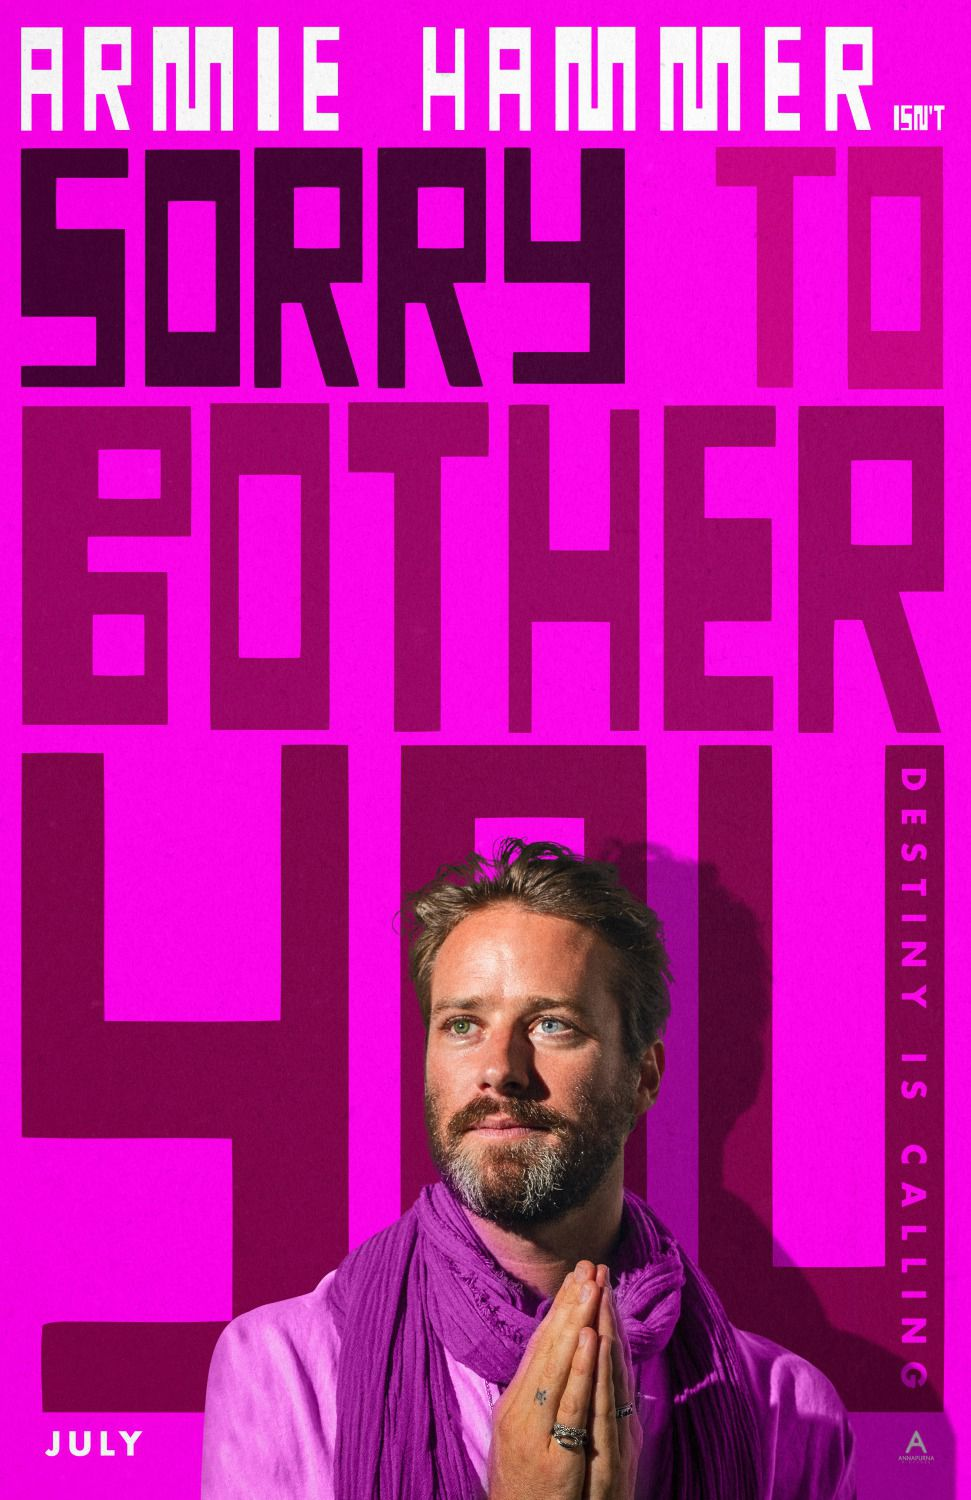 Sorry to Bother You - Armie Hammer - film poster